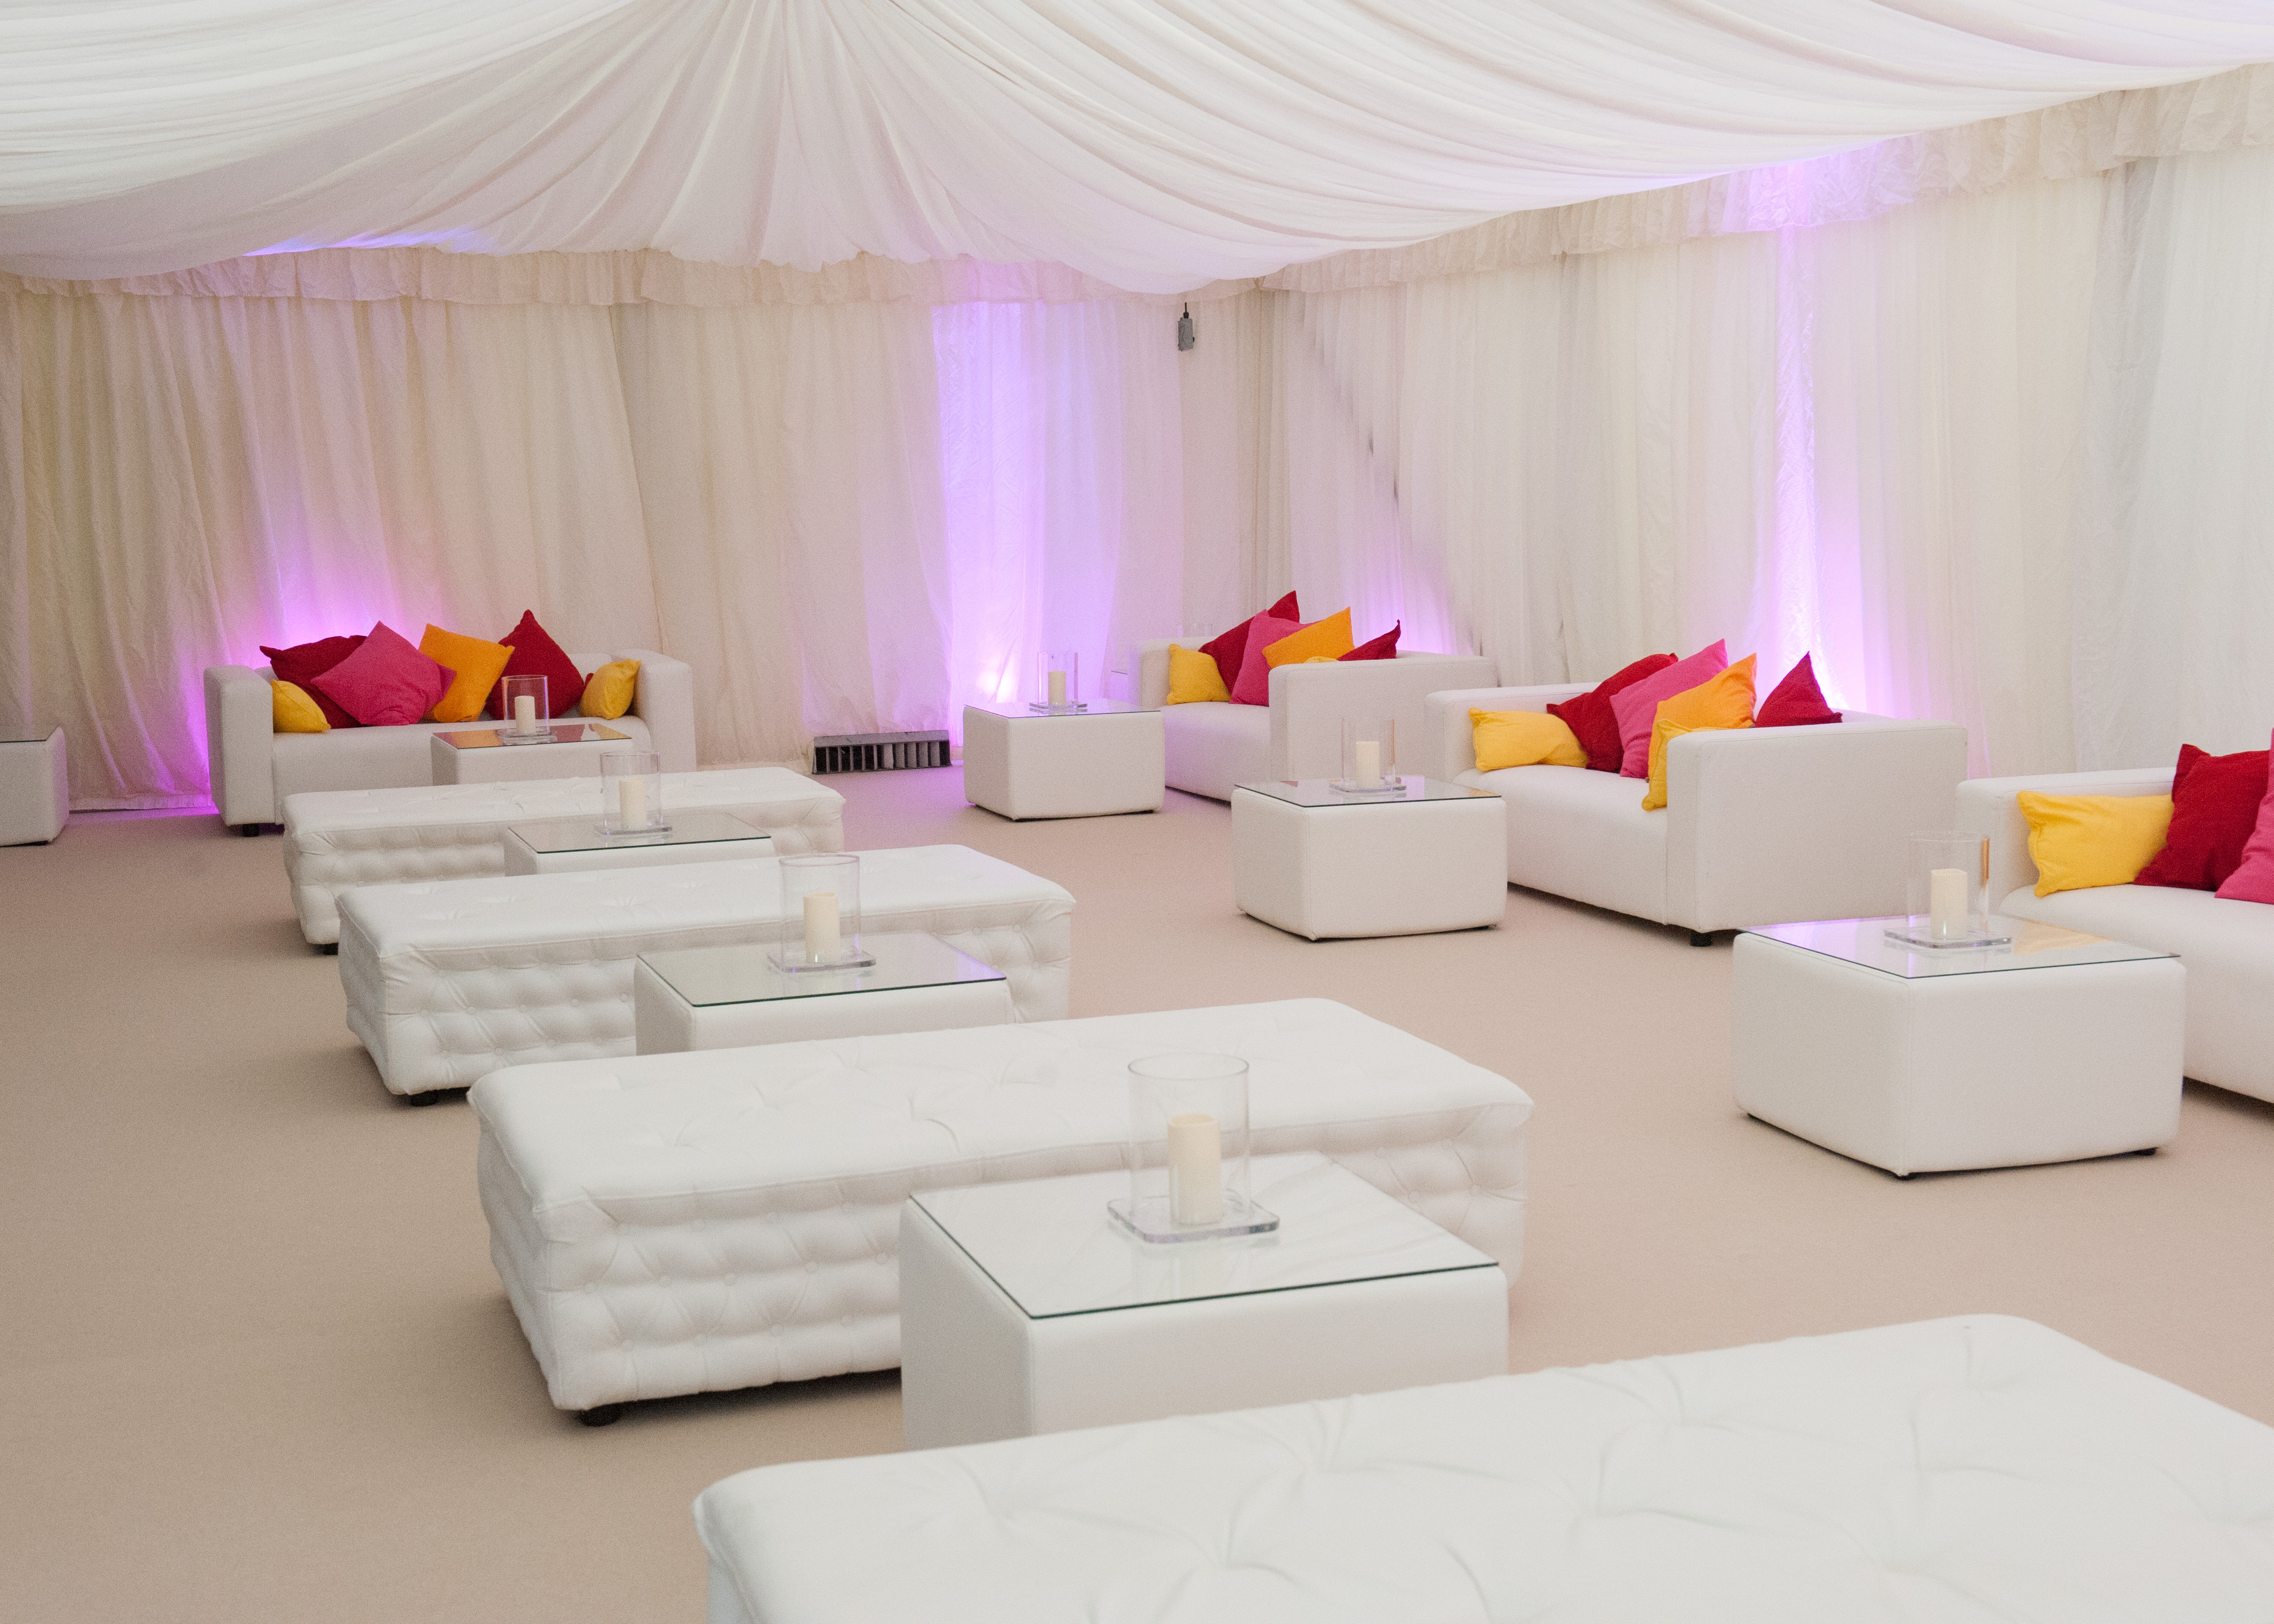 Faux Leather Chesterfield Benches in Marquee with Matching Tables